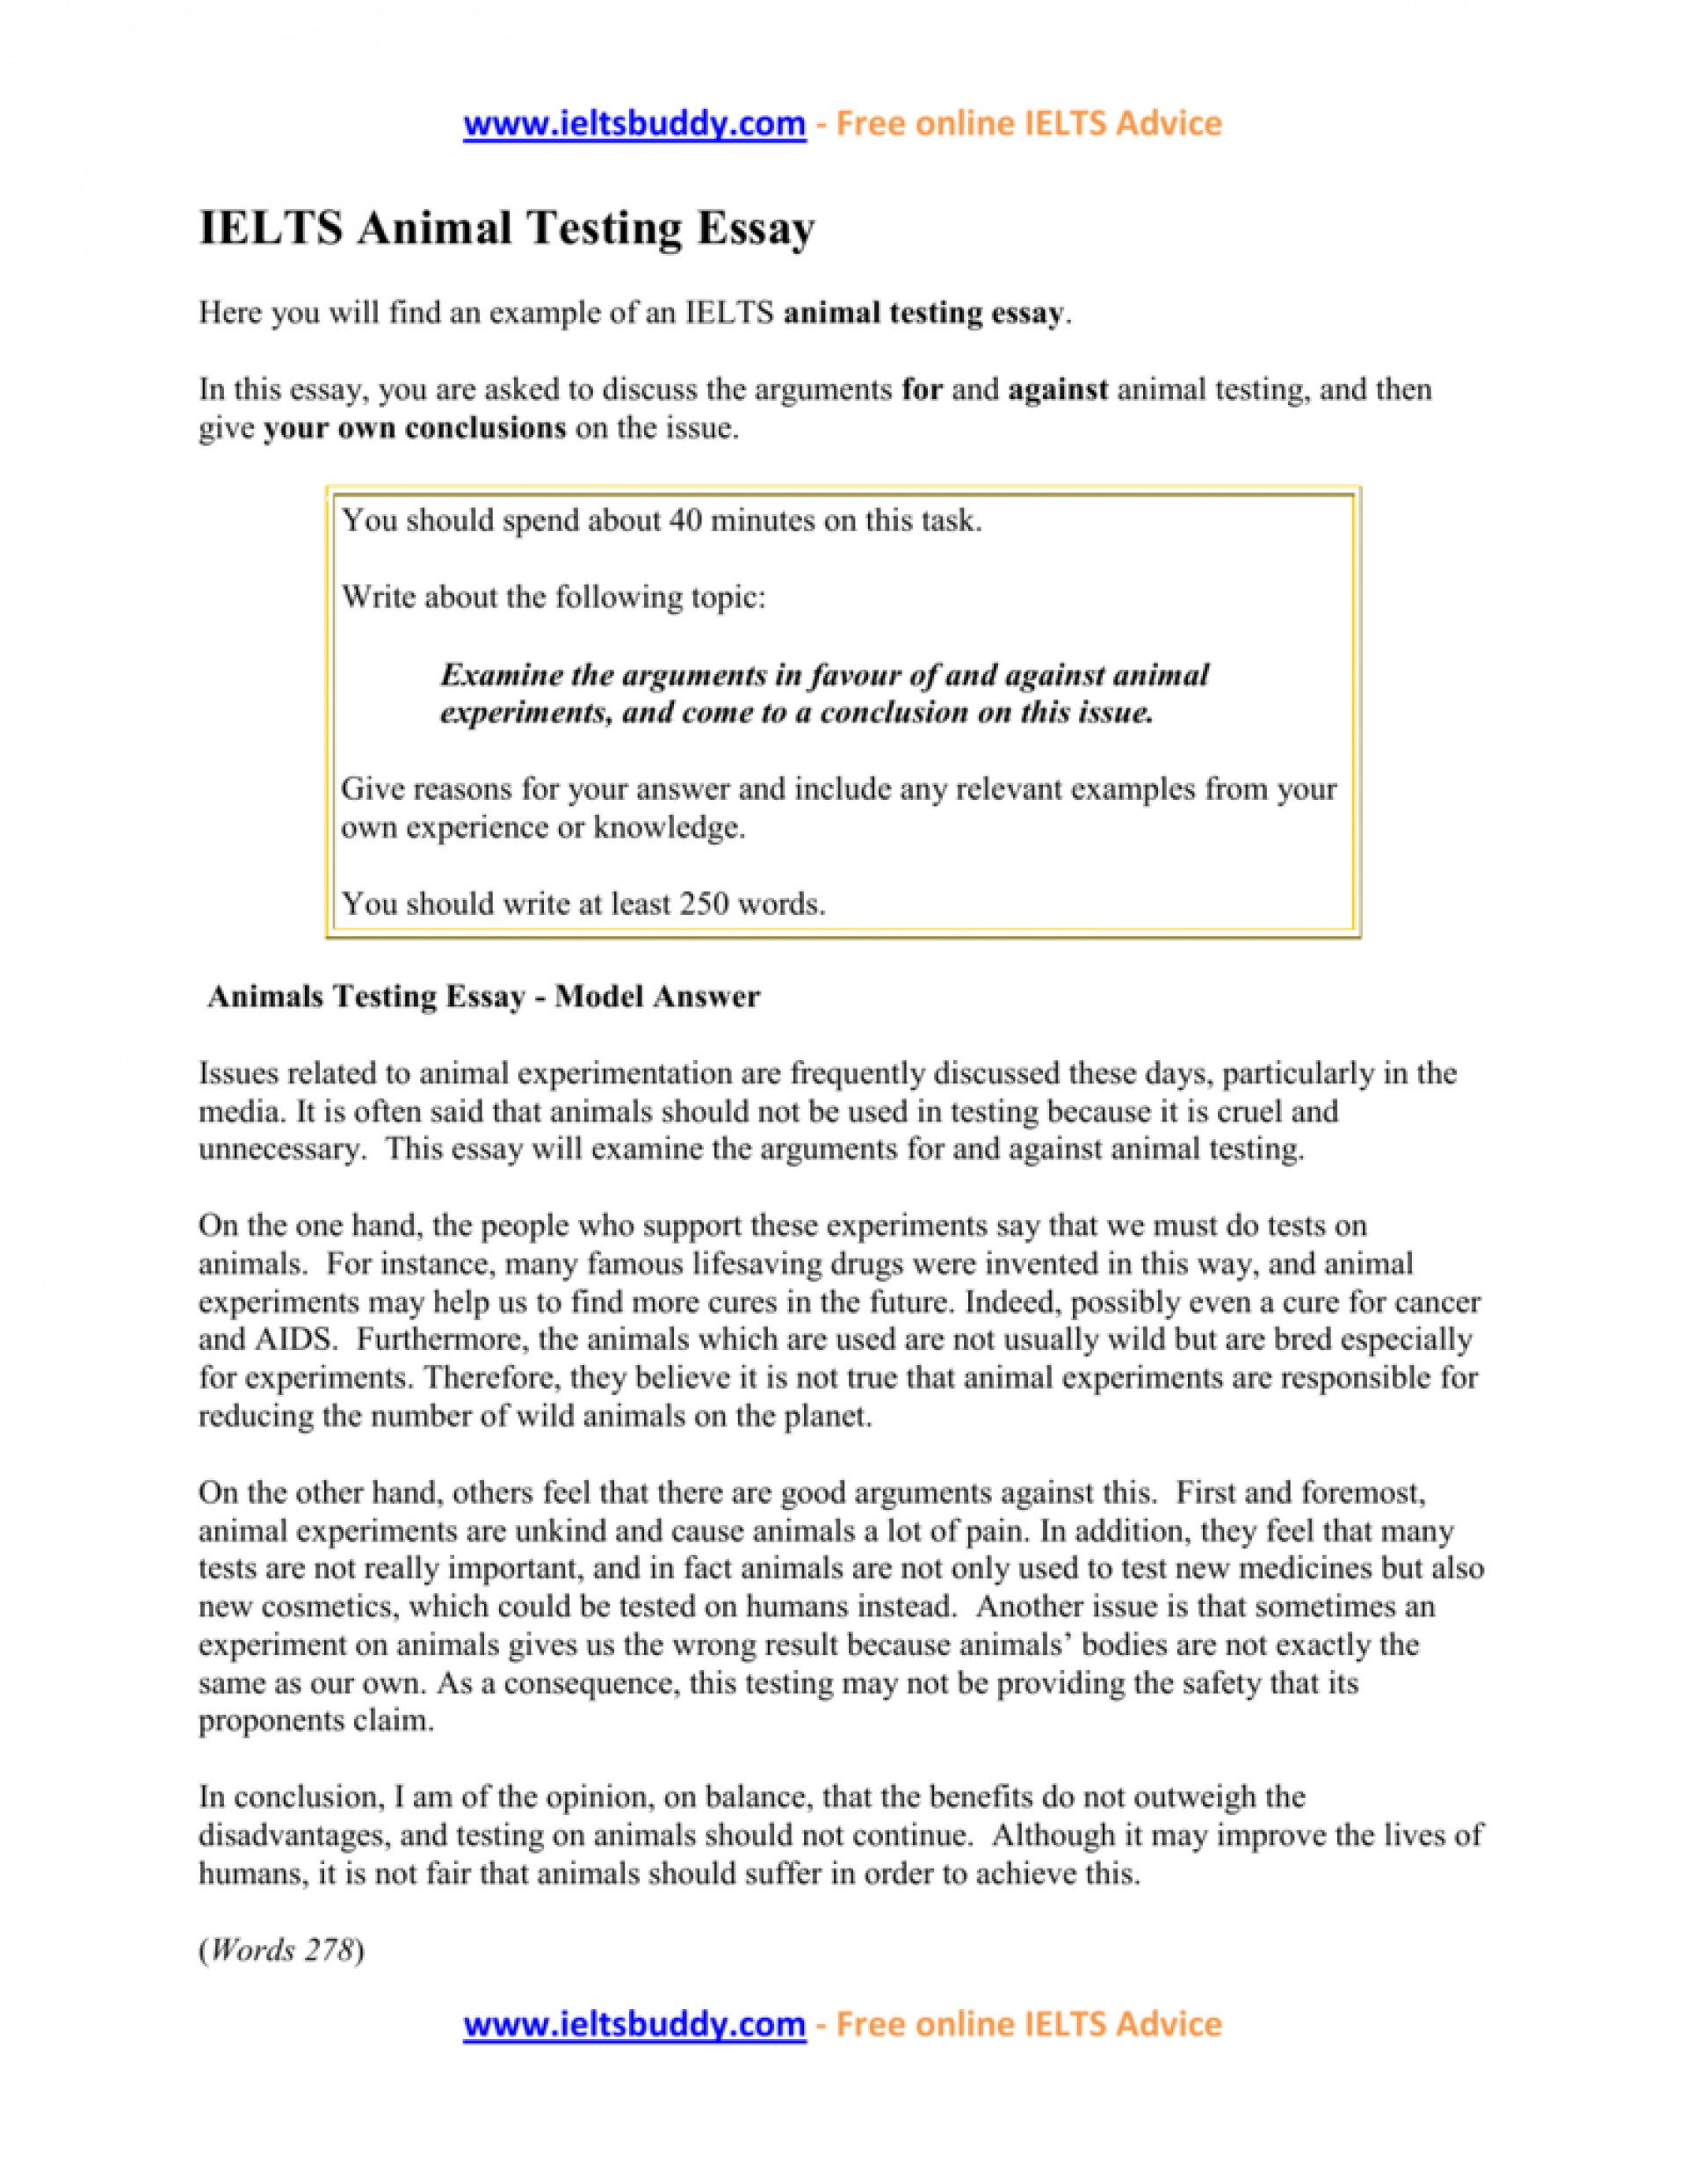 003 Against Animal Testing Essay Example 008917896 1 Imposing Titles Persuasive Conclusion 1920